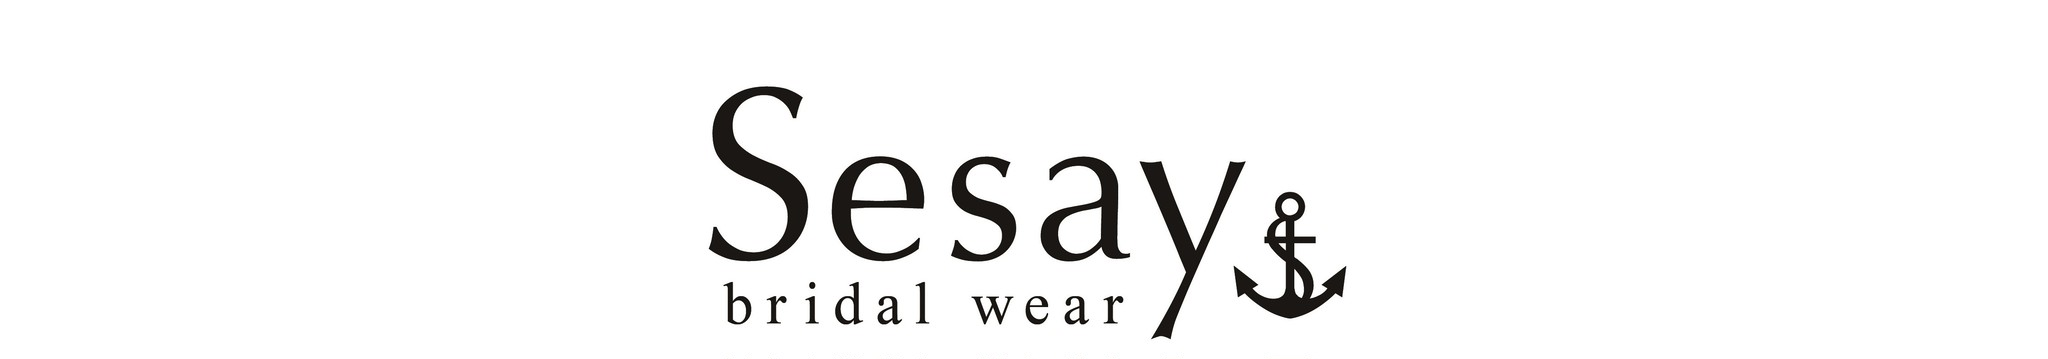 Sesay bridal wear Japan